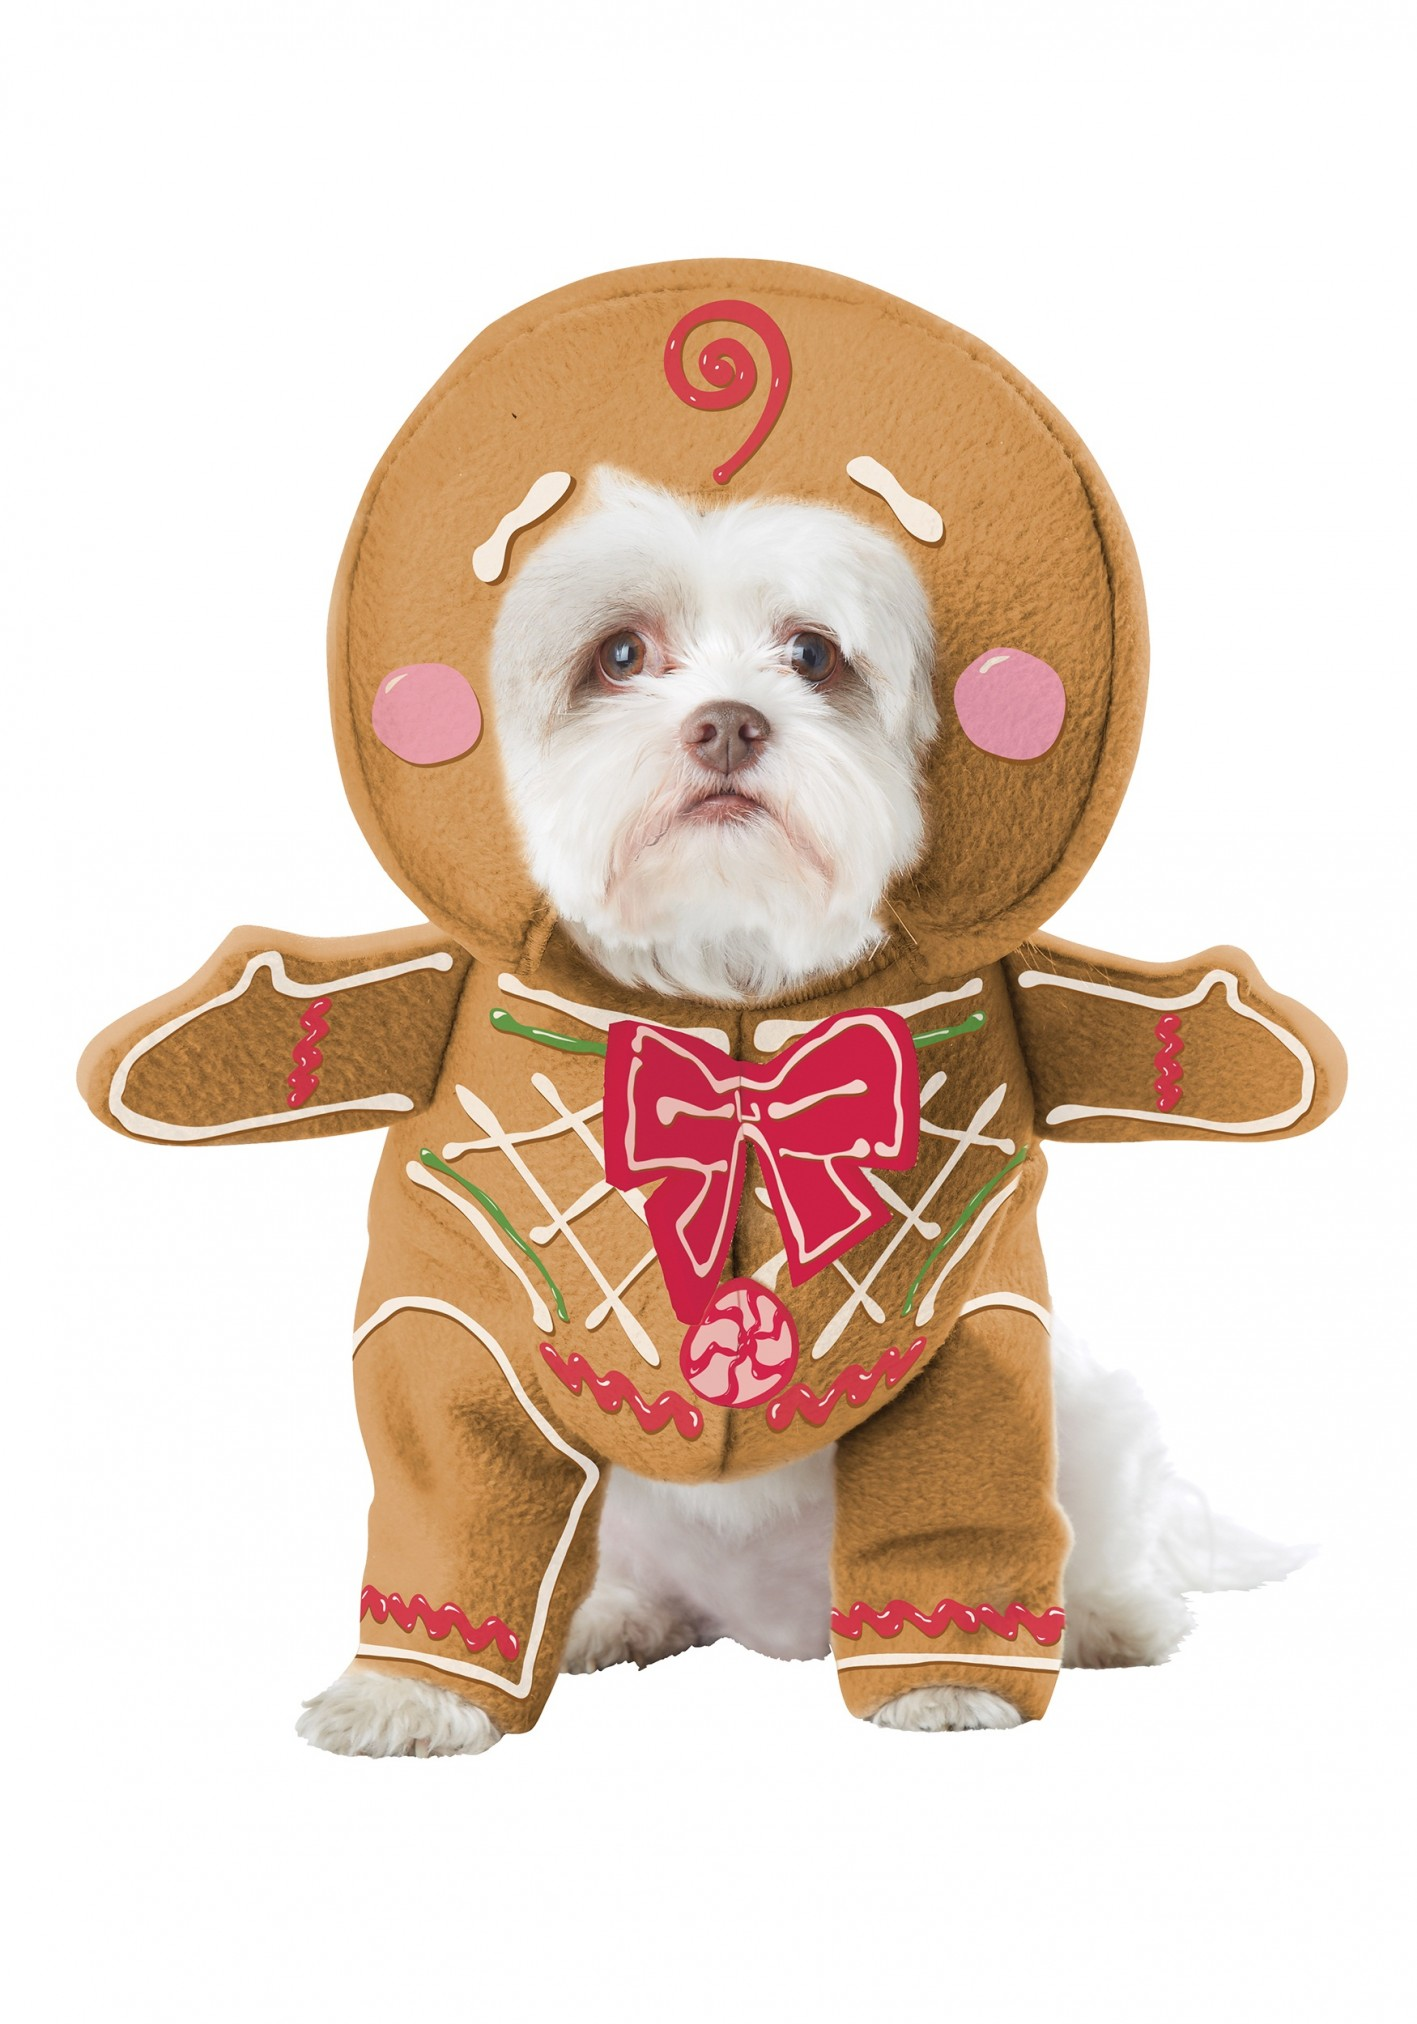 Puppy Dog Costume For Children